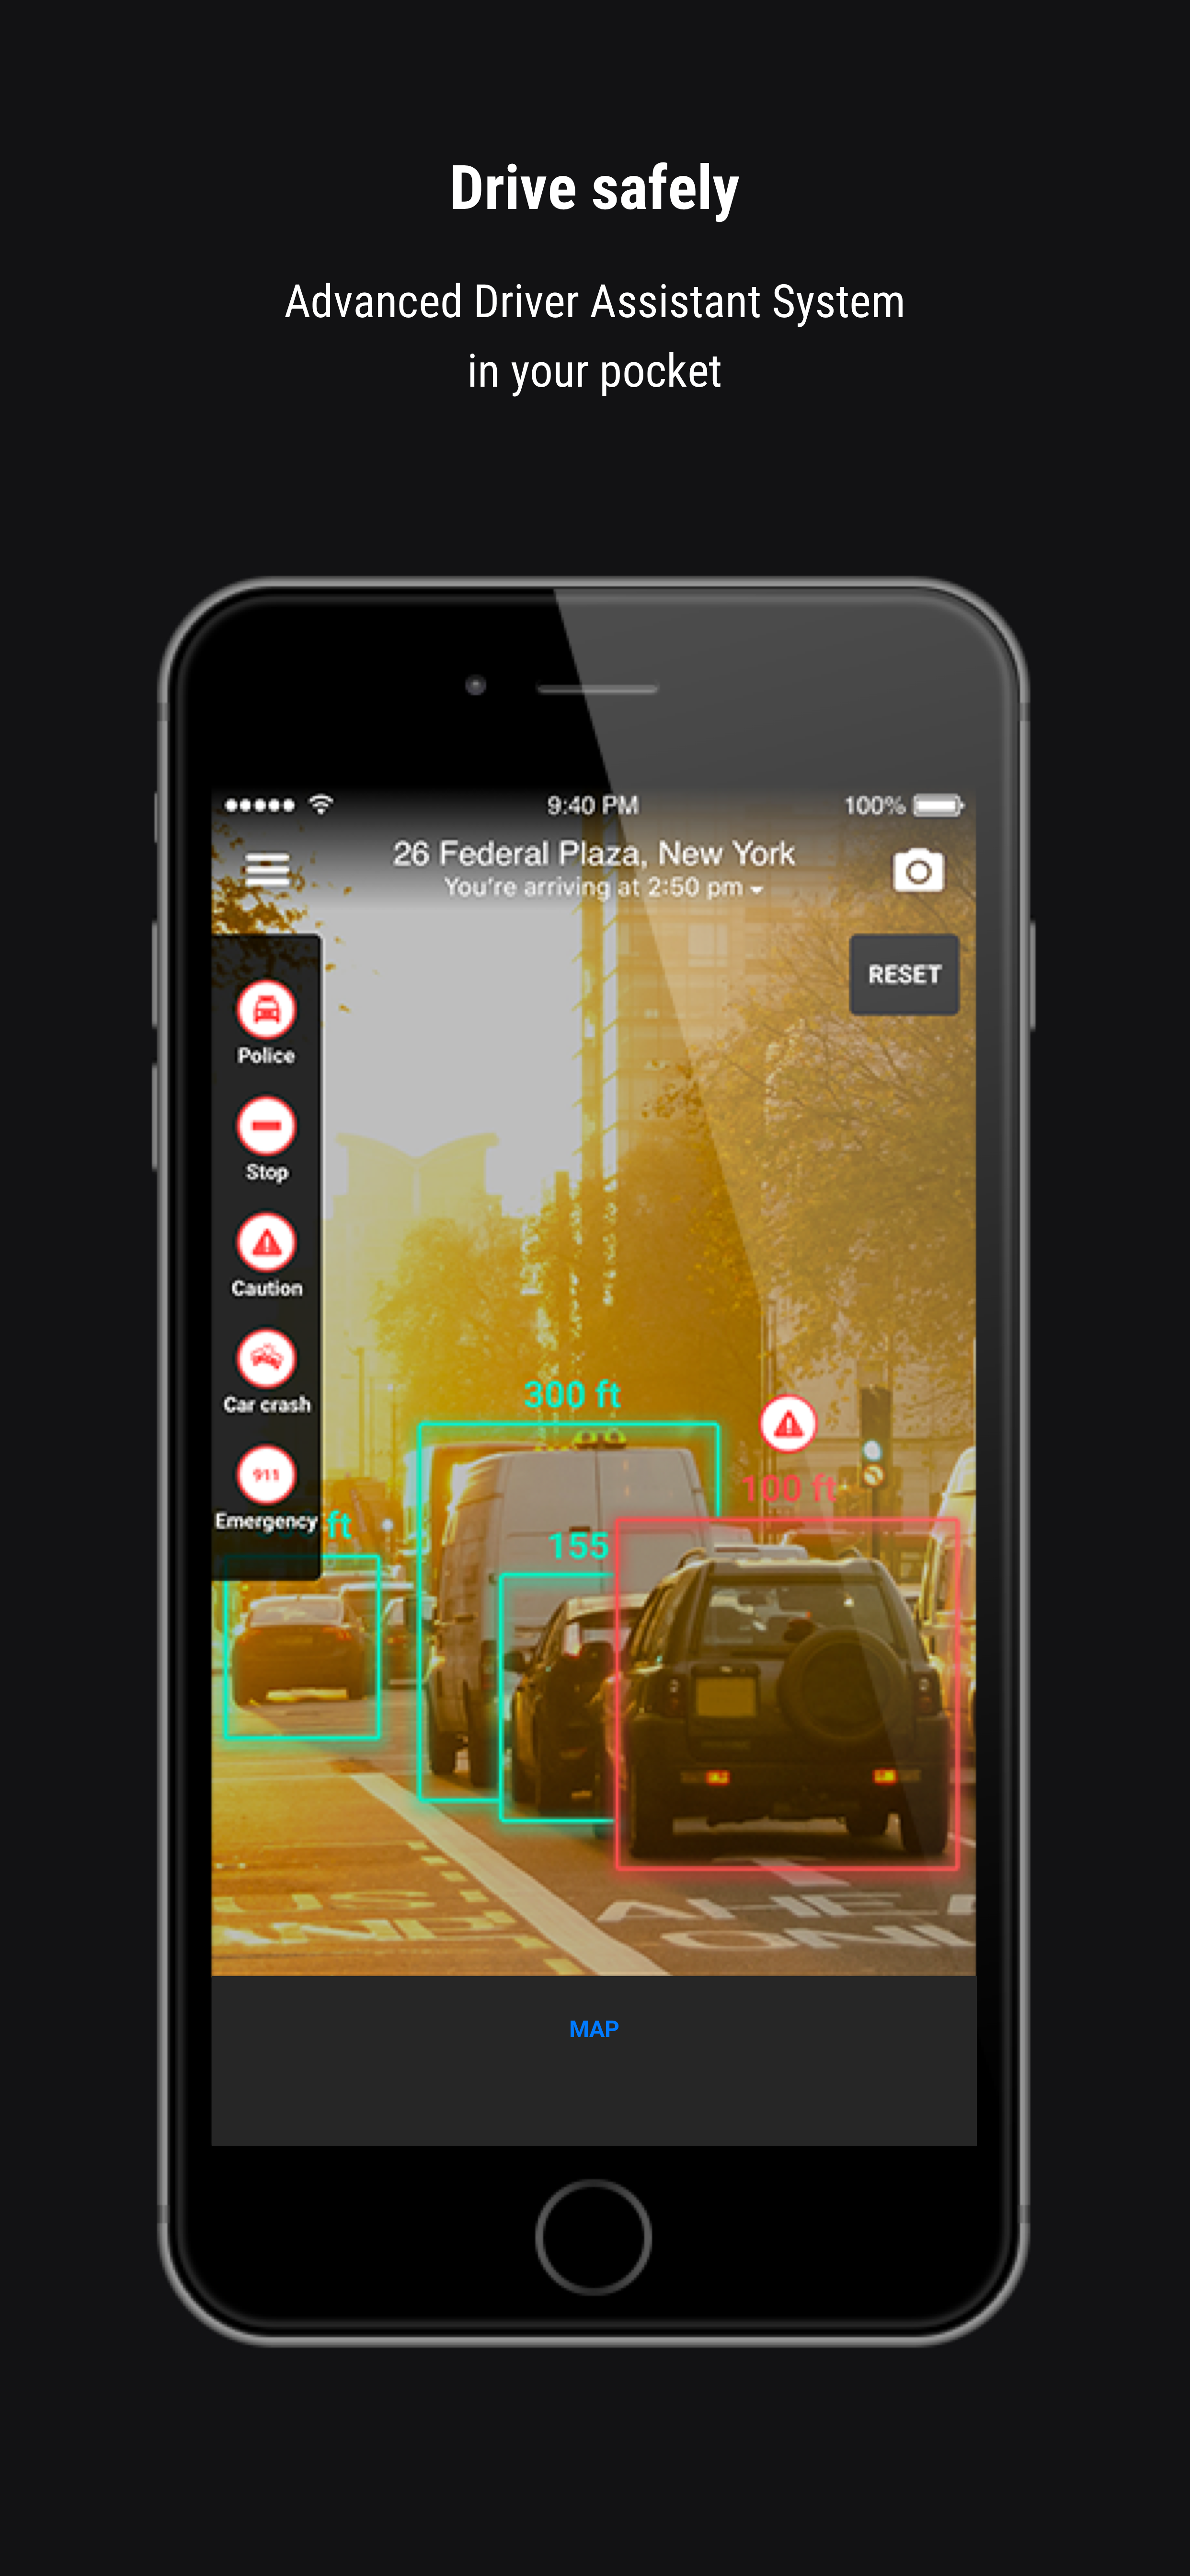 Vision - An AI assistant for safe and informed driving